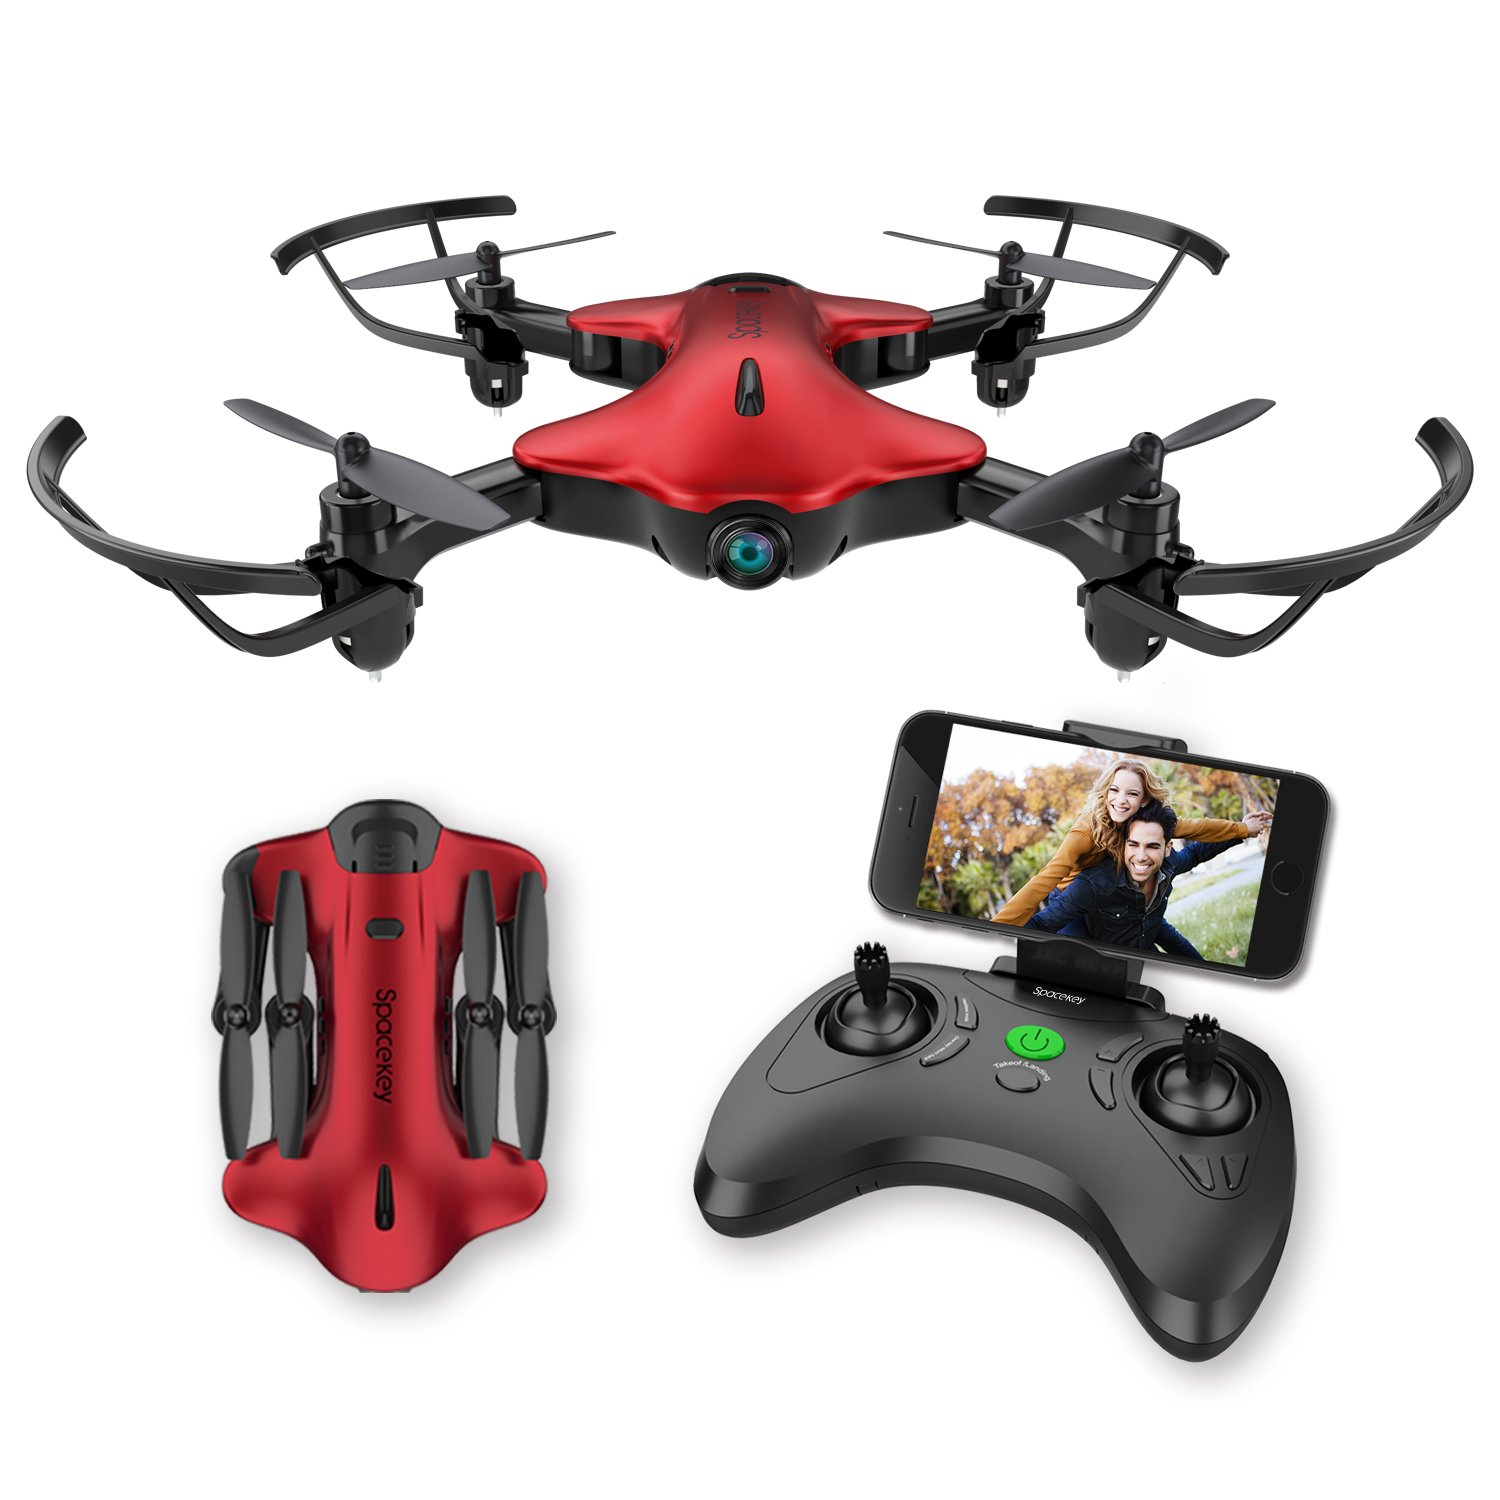 Drones for kids, Spacekey FPV Wi-Fi Drone with Camera 720P HD